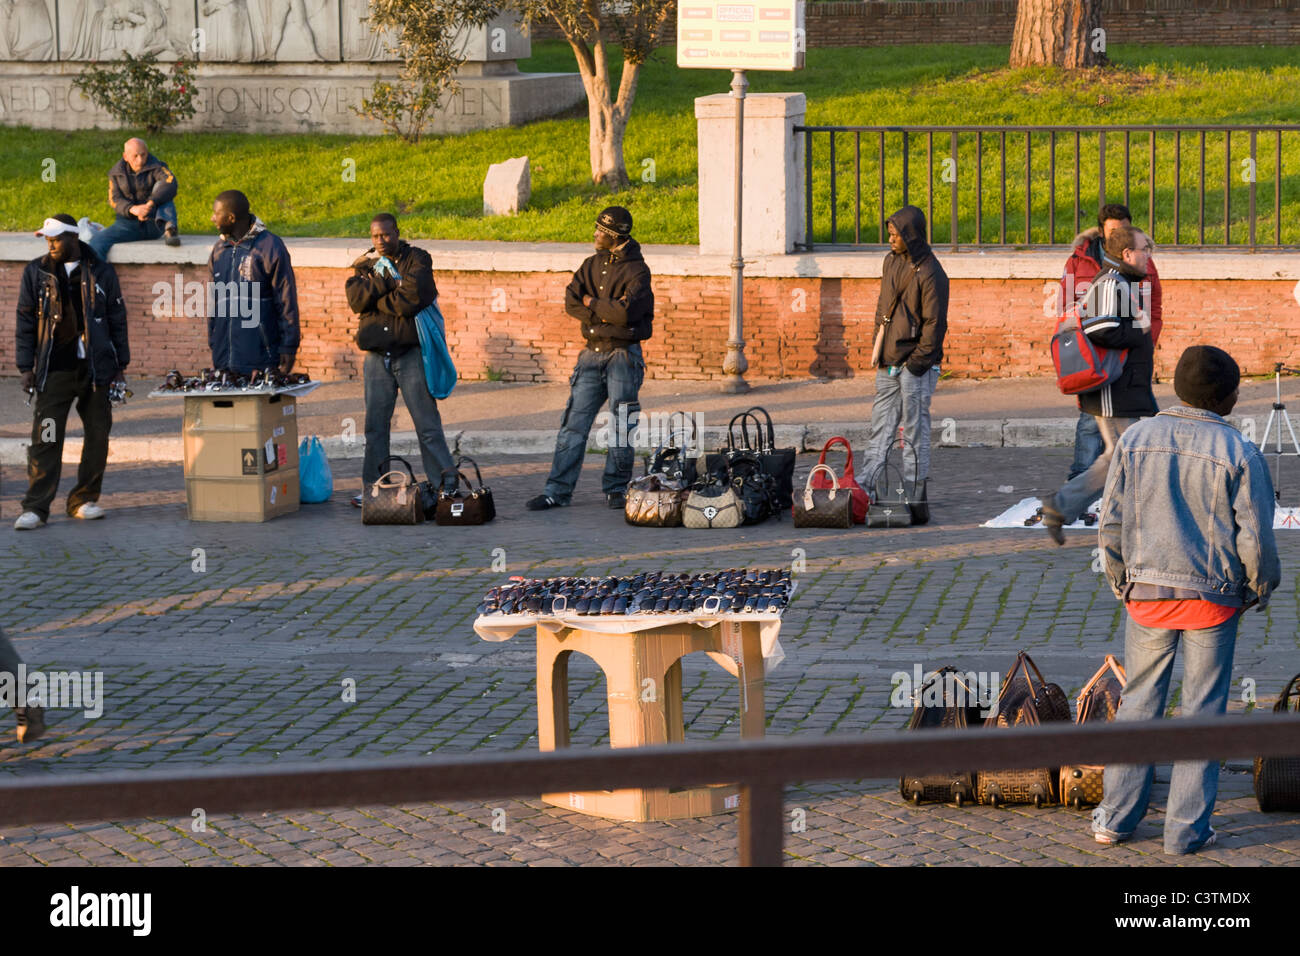 African immigrants set up illegal street stalls selling fake brand goods, Rome, Italy - Stock Image